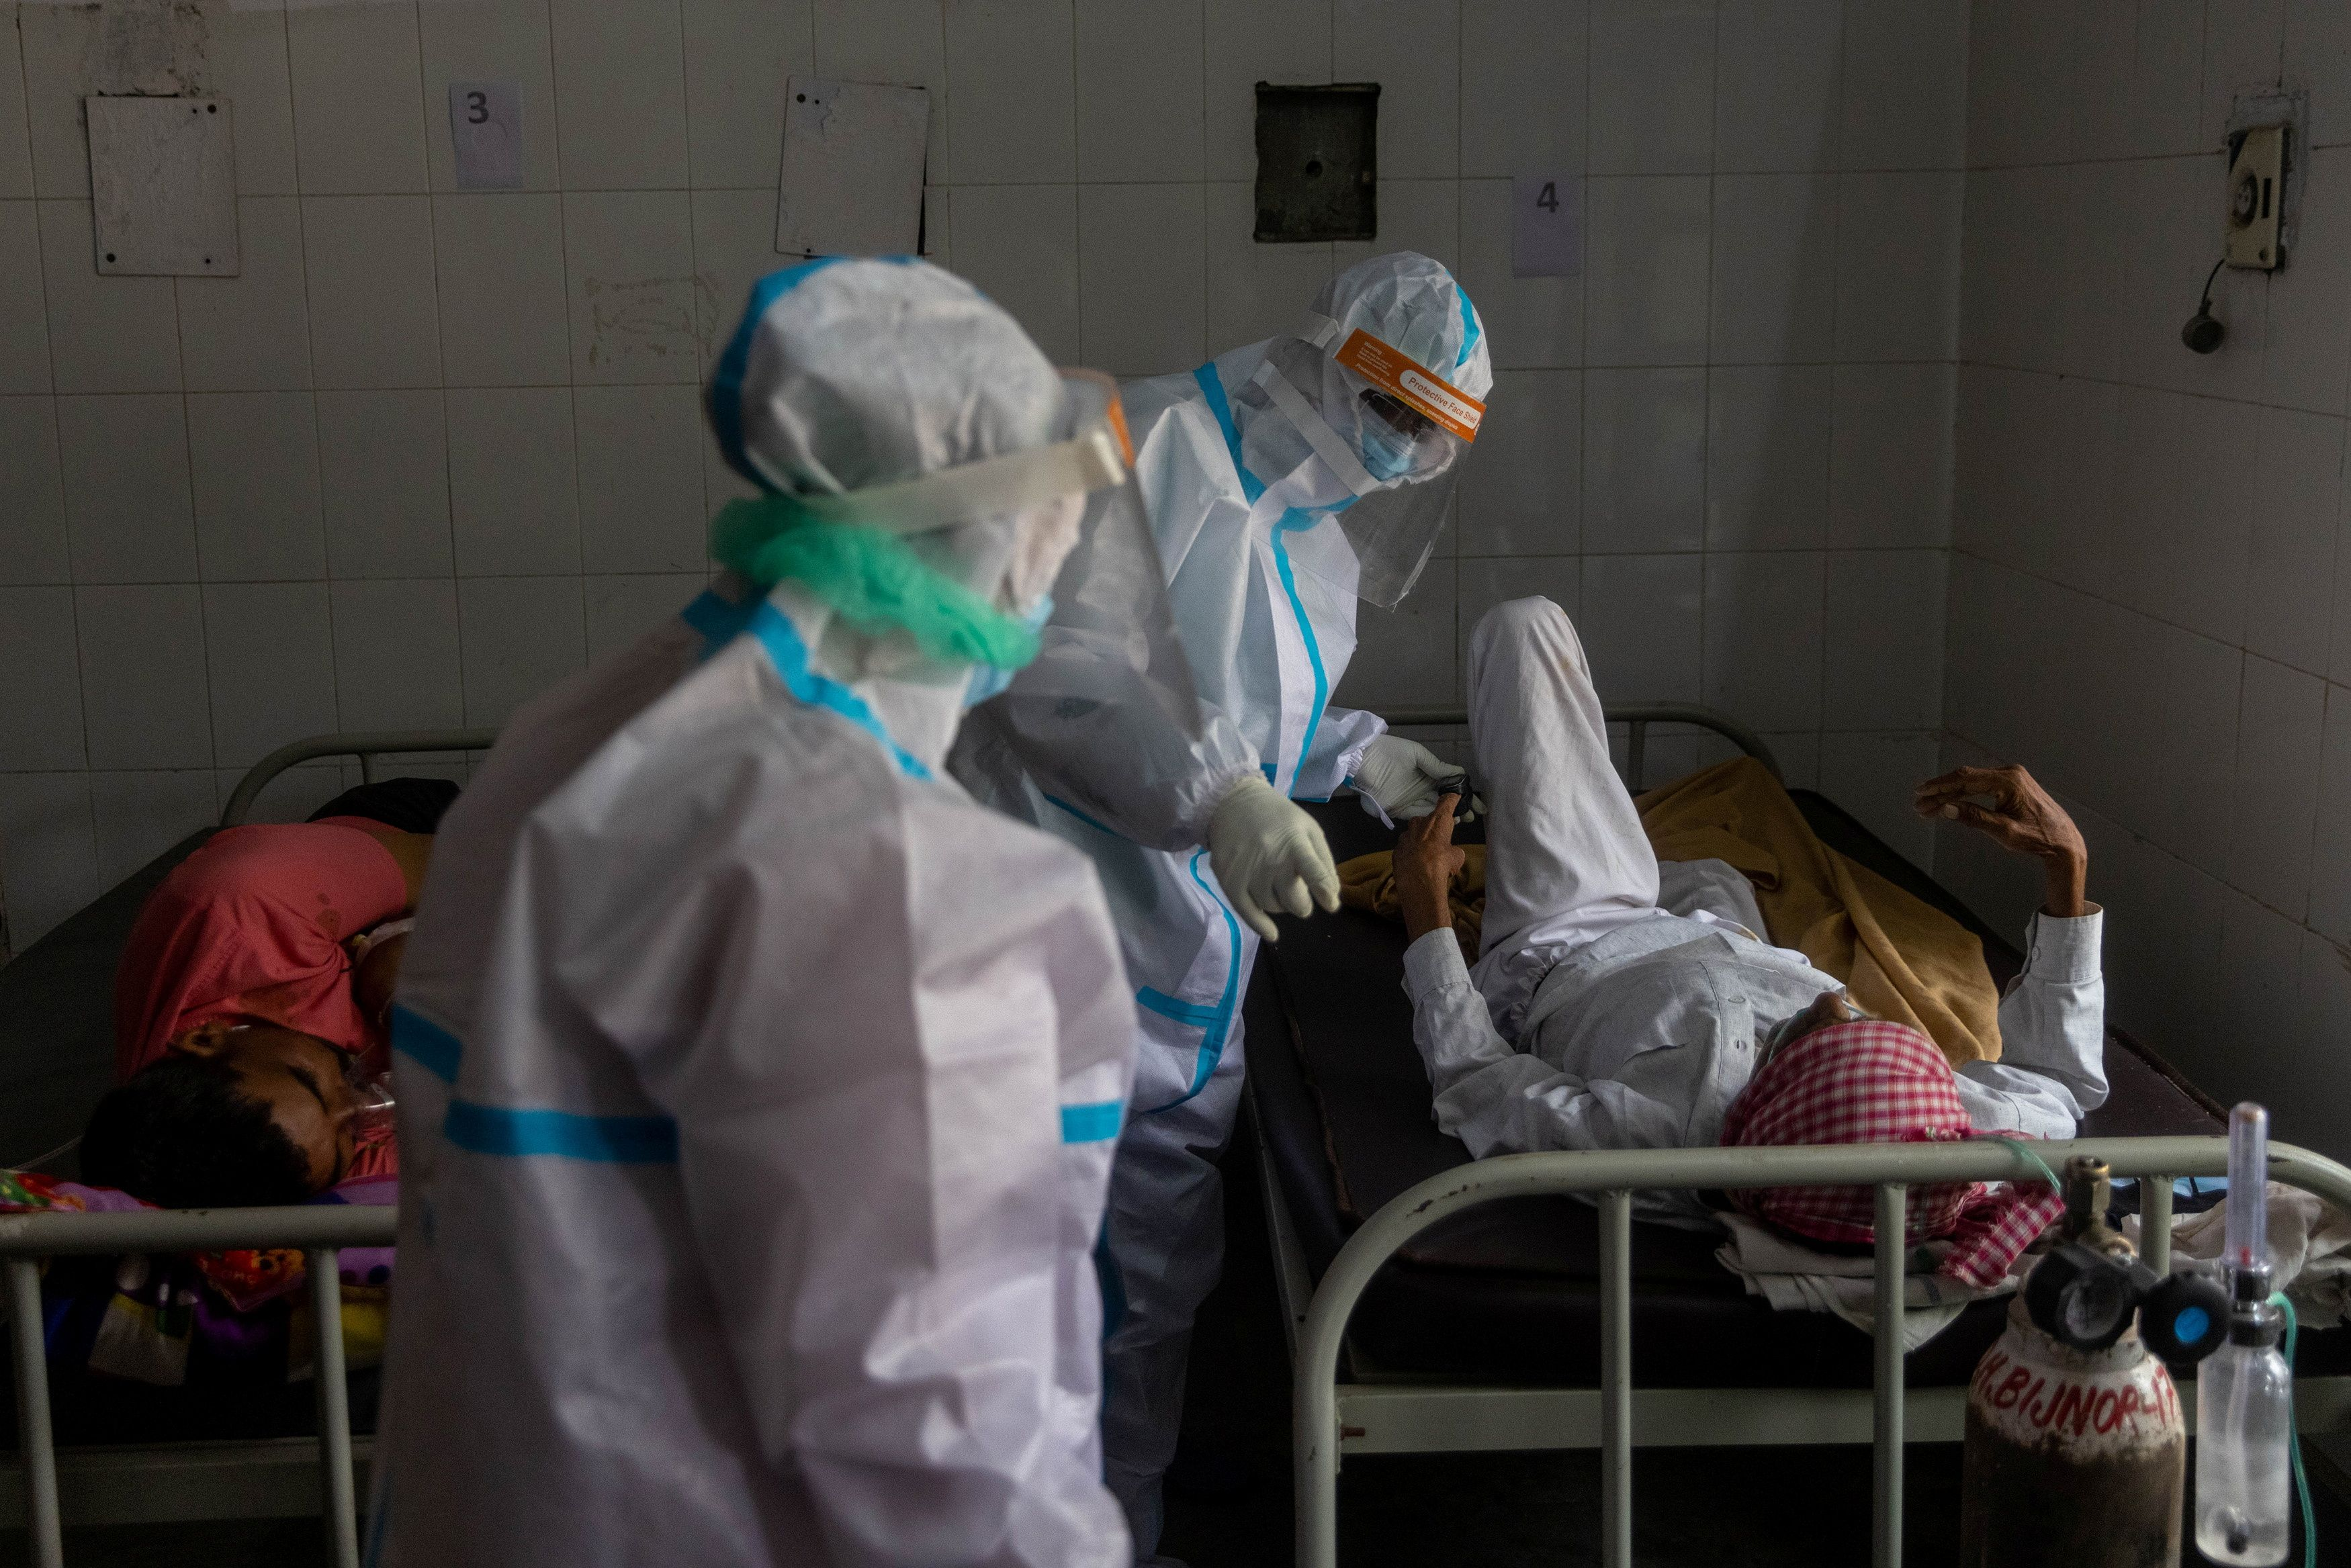 Medics tend to a man with breathing problems inside a COVID-19 ward of a government-run hospital, amidst the coronavirus disease (COVID-19) pandemic, in Bijnor district, Uttar Pradesh, India, May 11, 2021. REUTERS/Danish Siddiqui